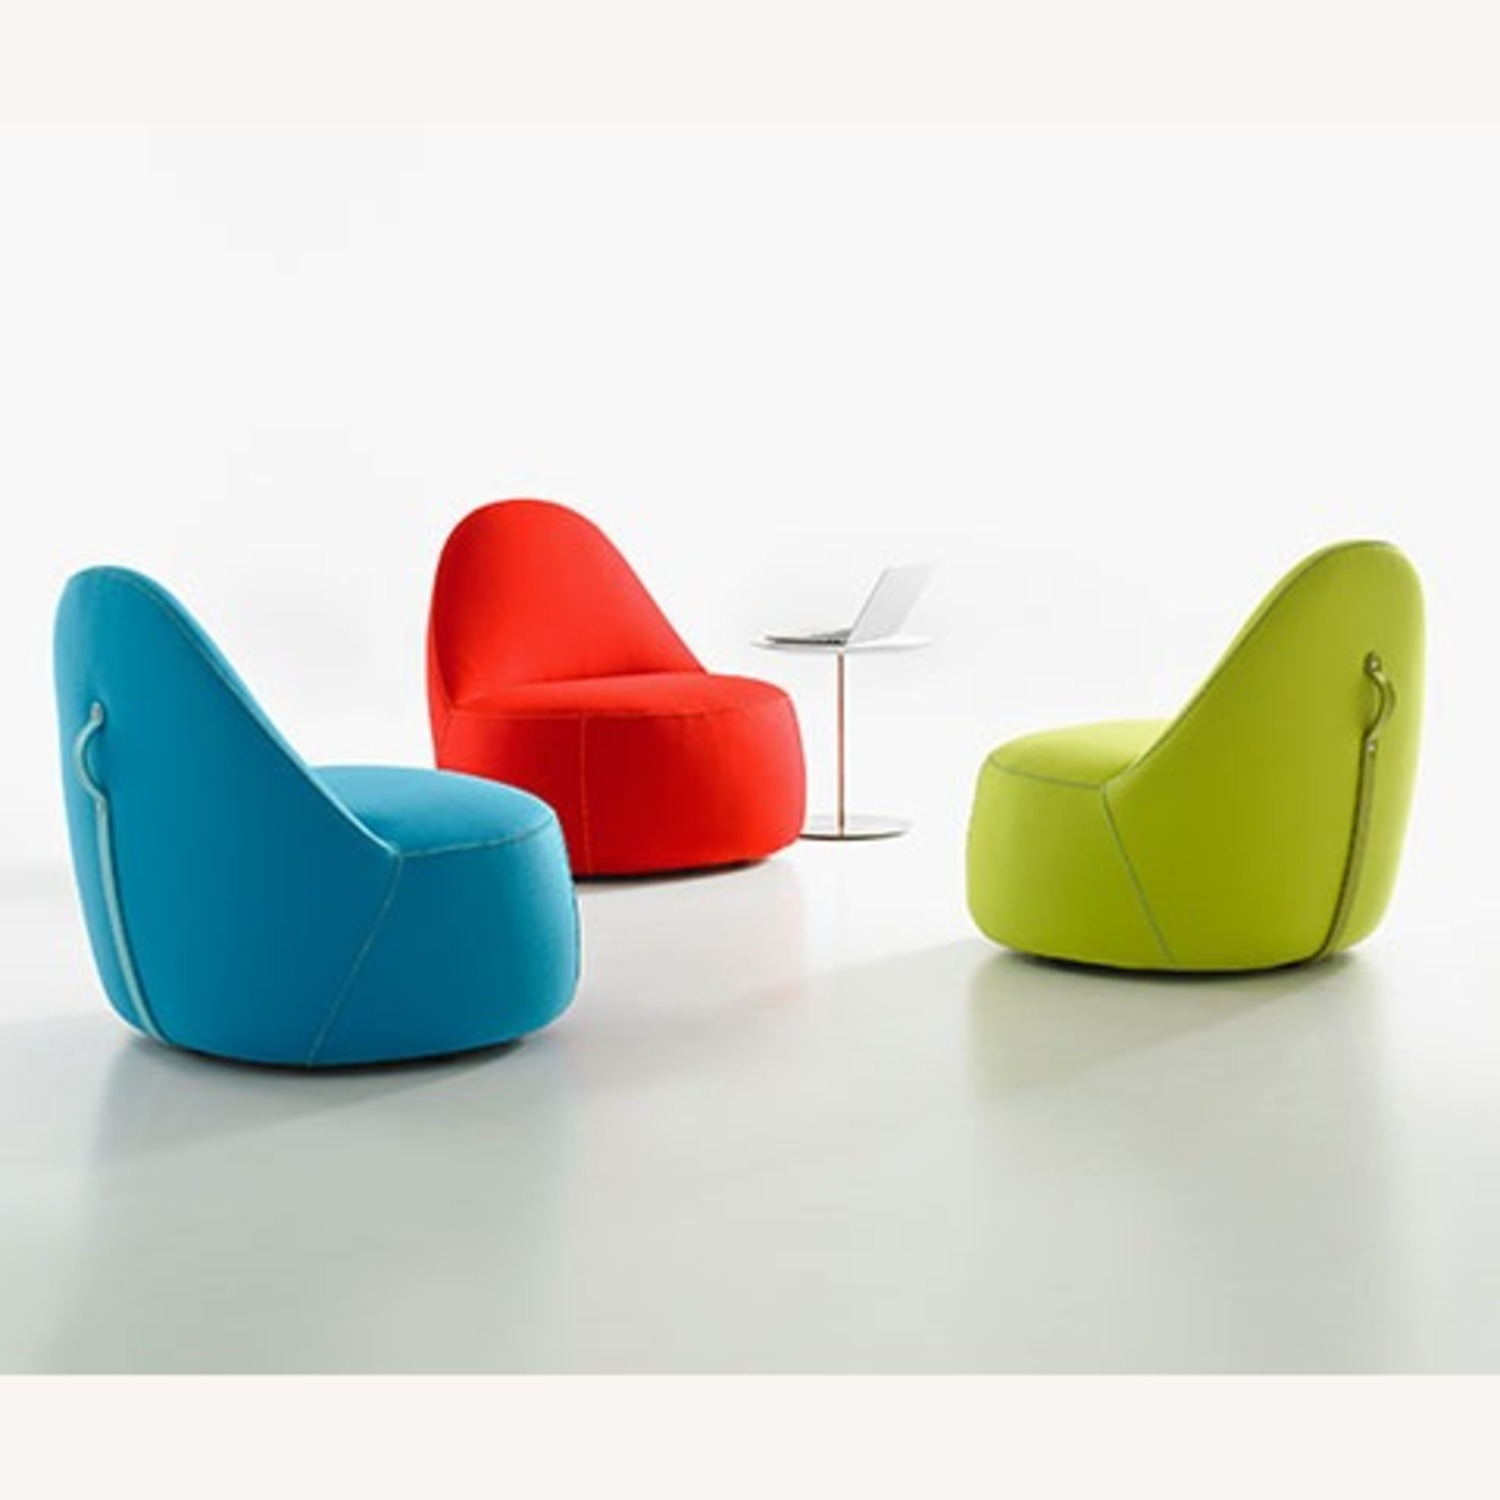 Bernhardt Design Mitt Chair - image-7